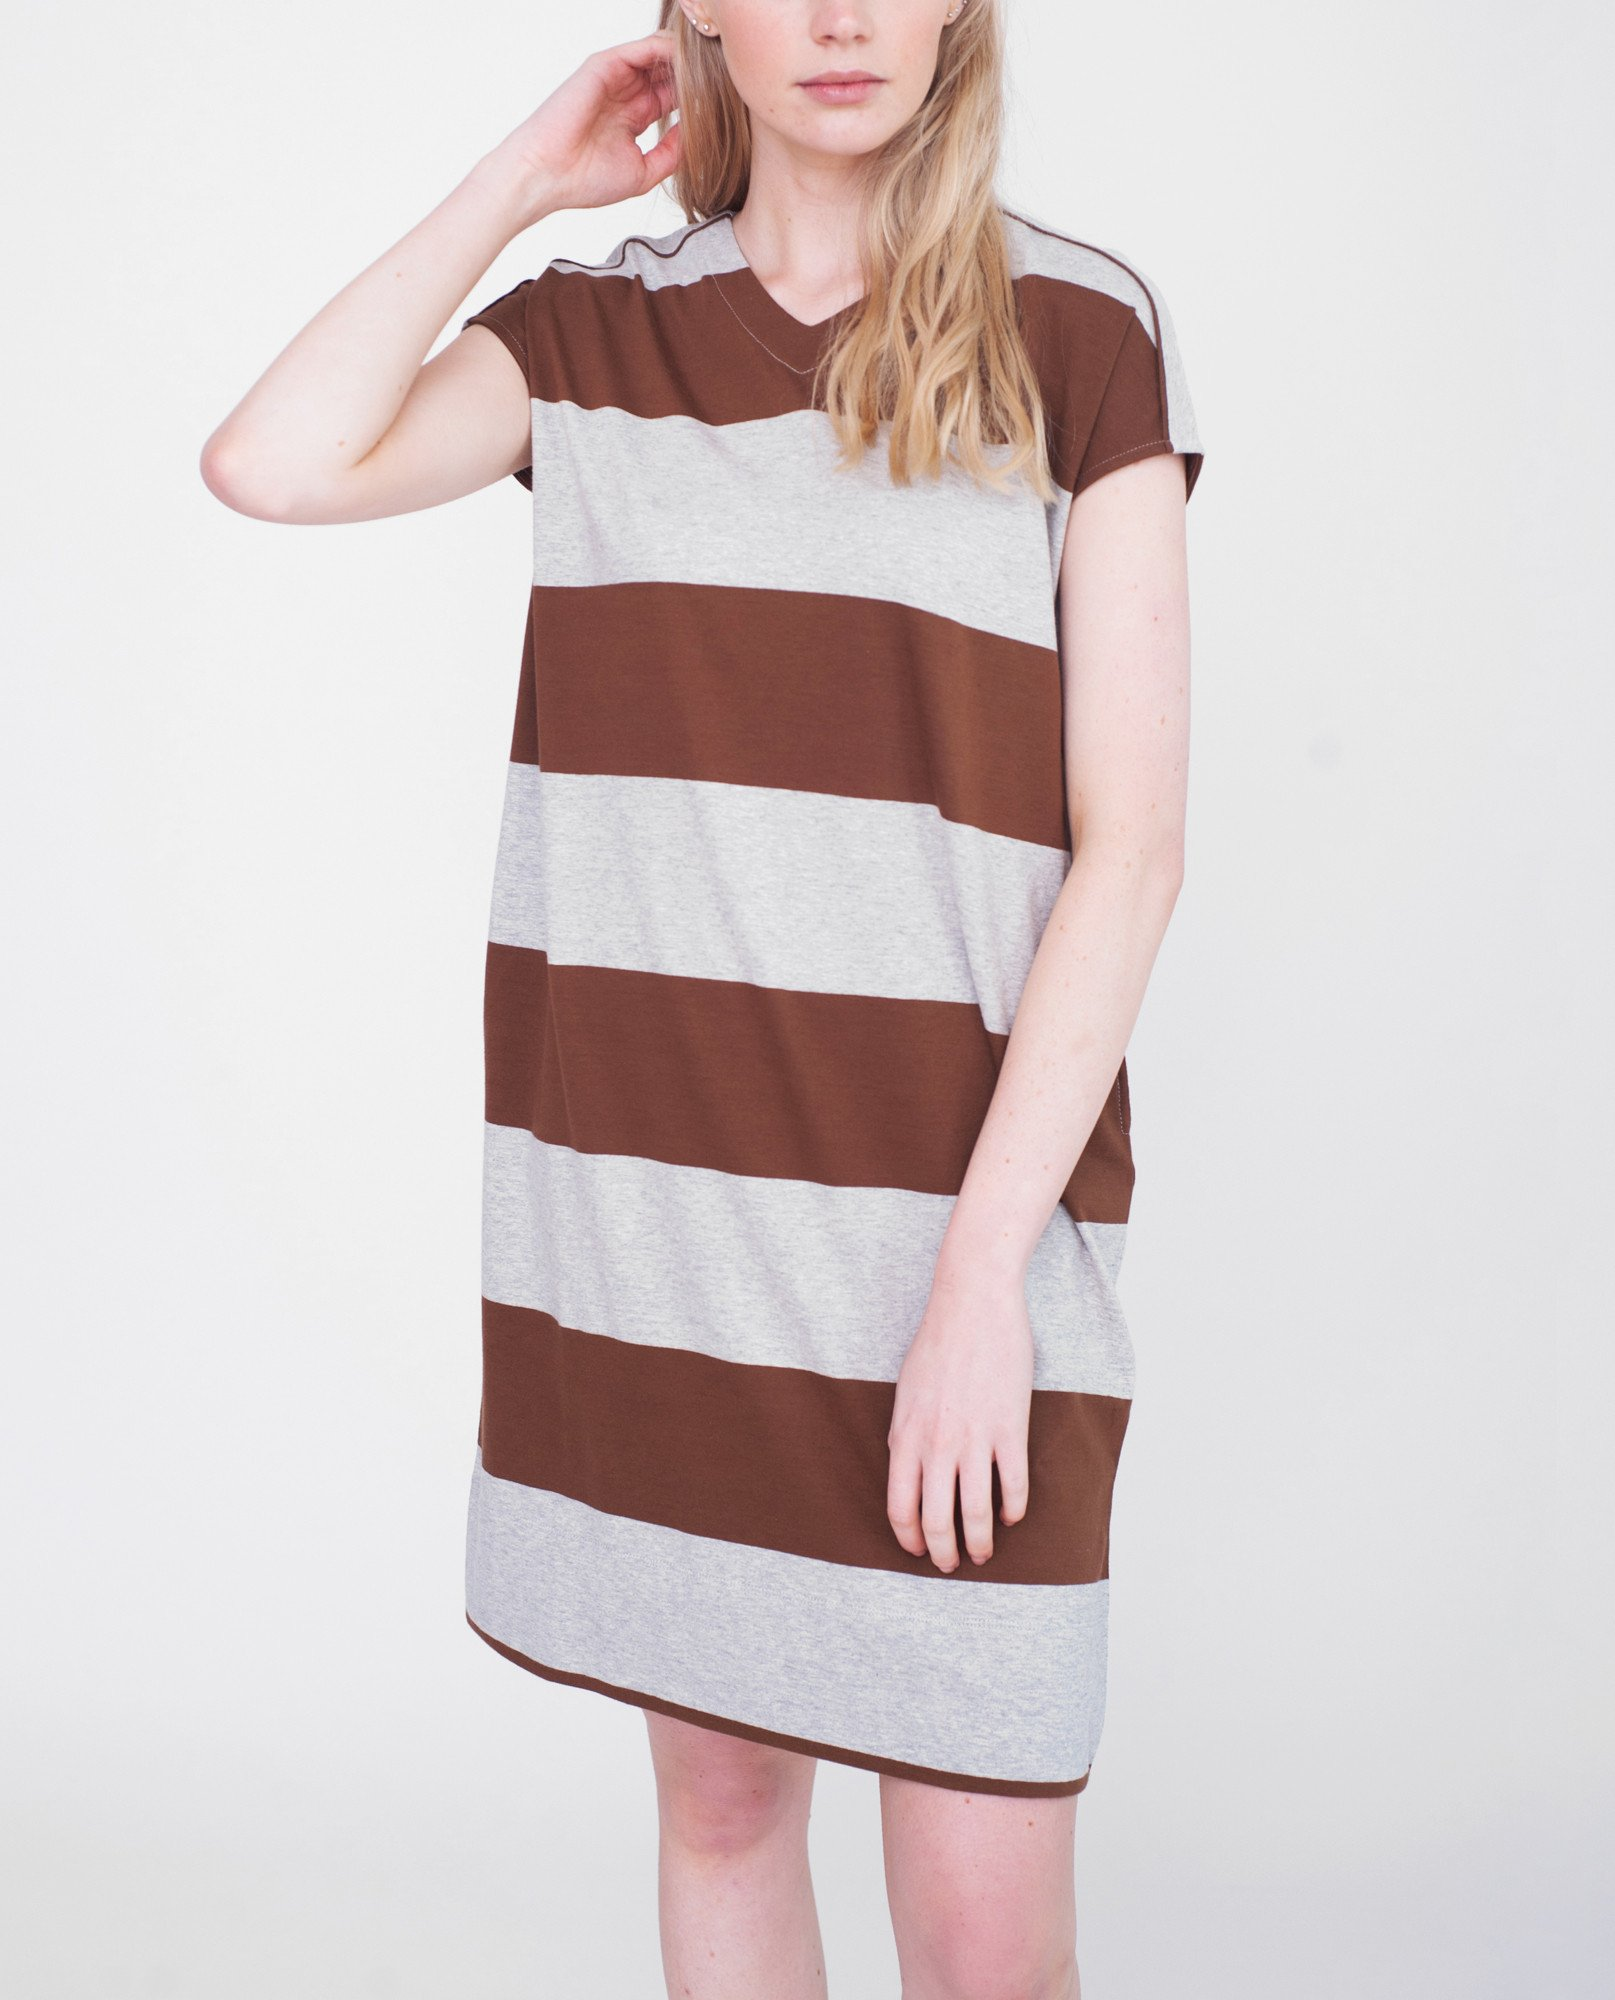 AUBREY Organic Cotton Dress In Light Grey And Brown from Beaumont Organic